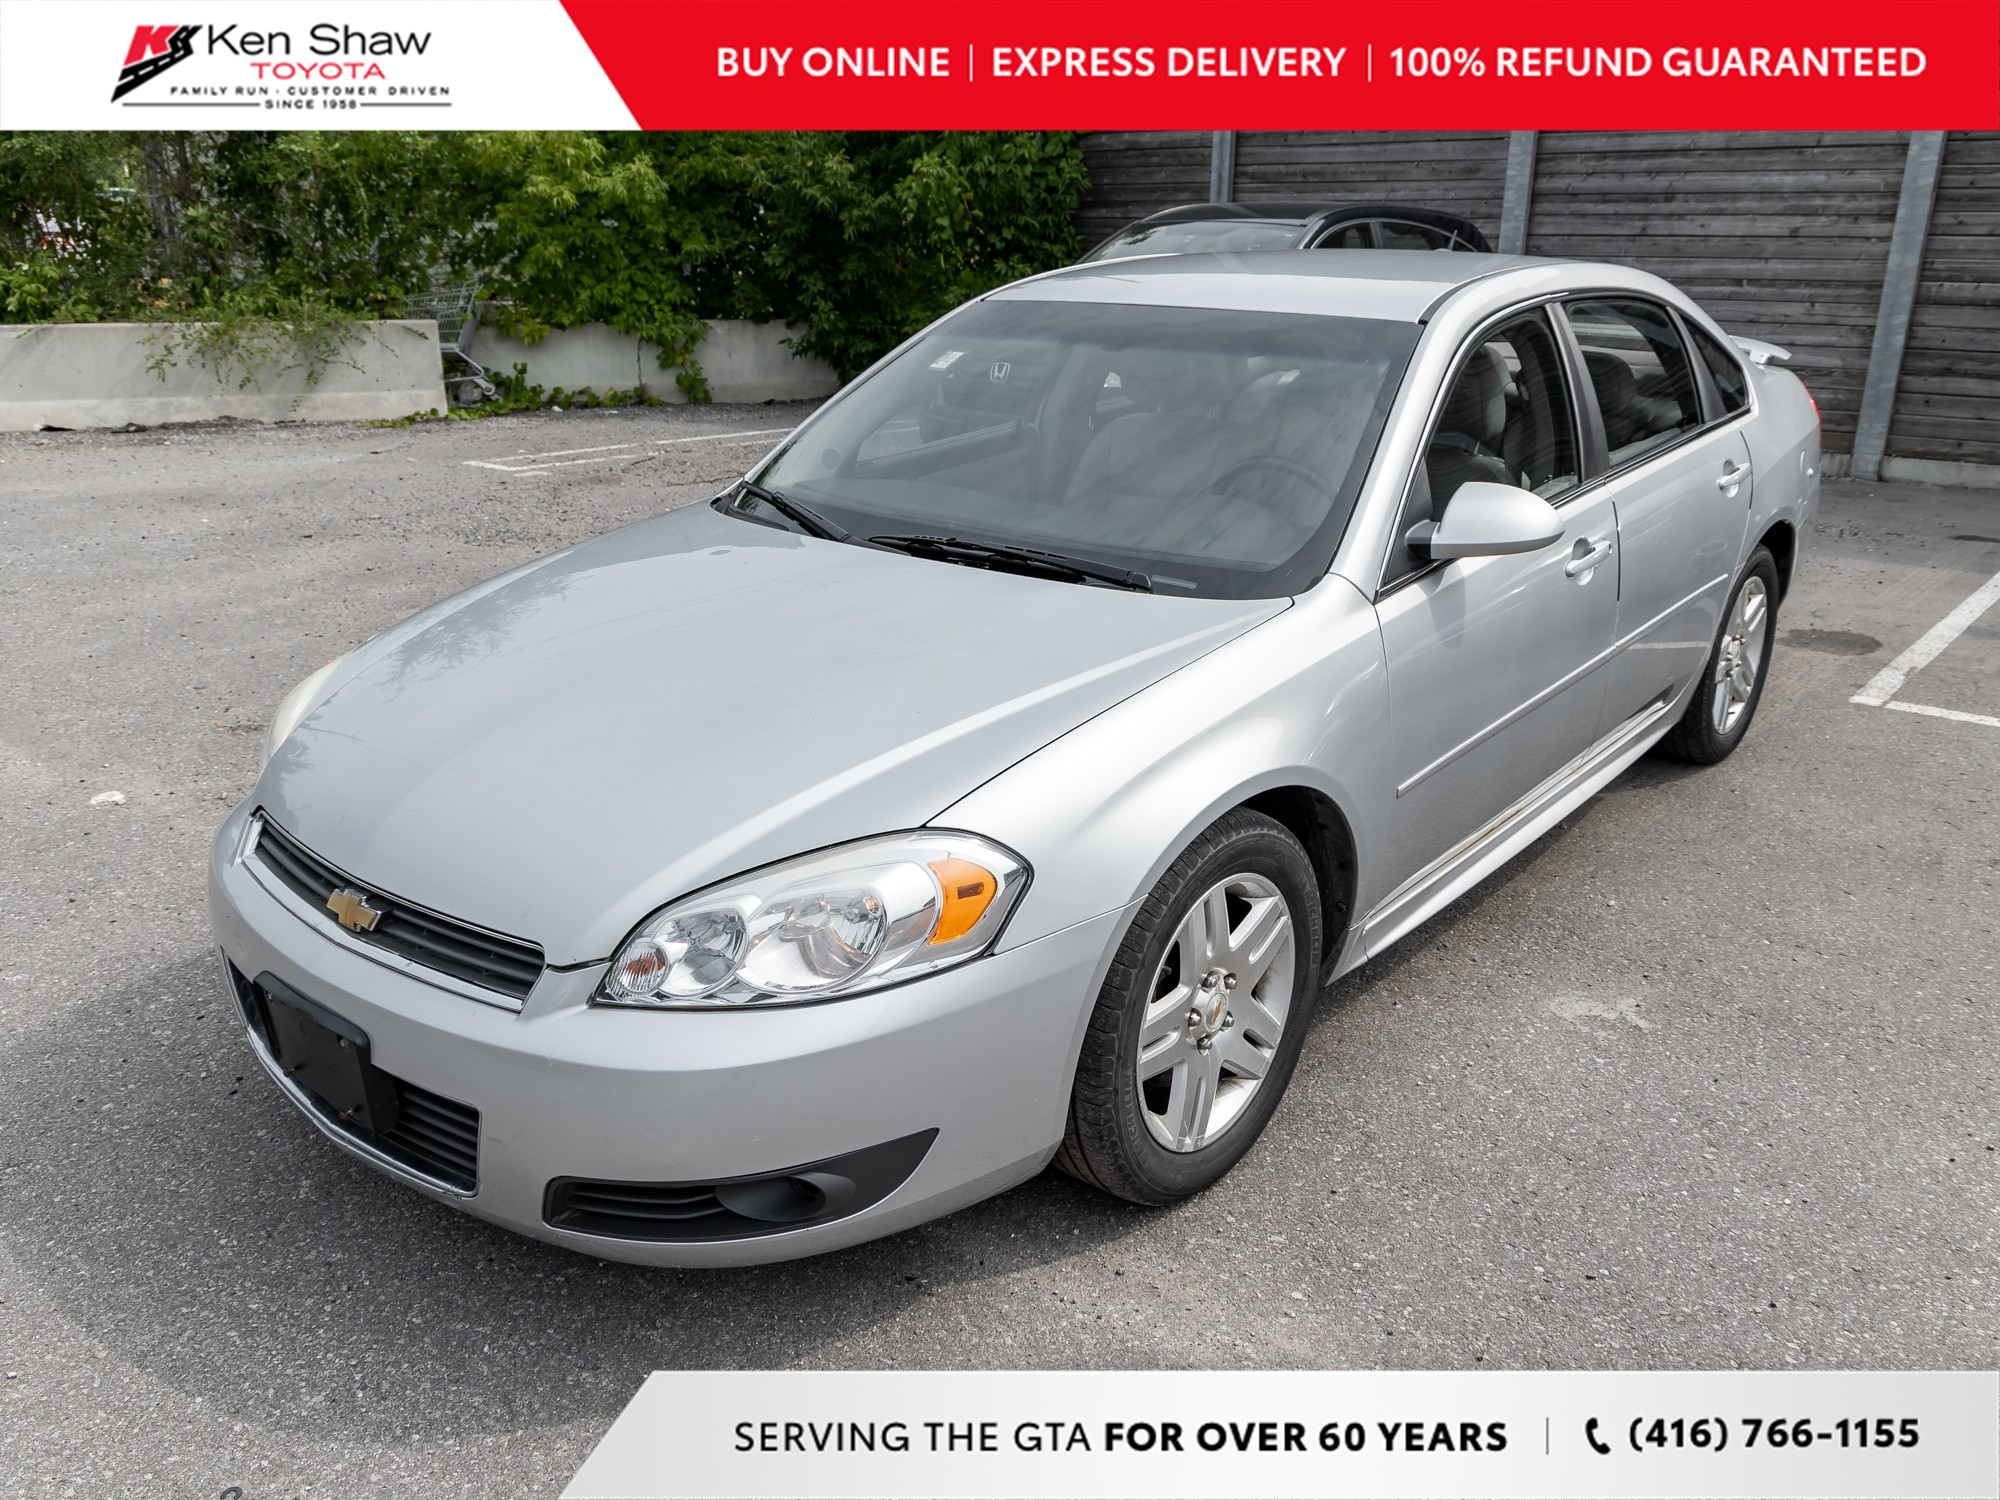 used 2010 Chevrolet Impala car, priced at $3,488